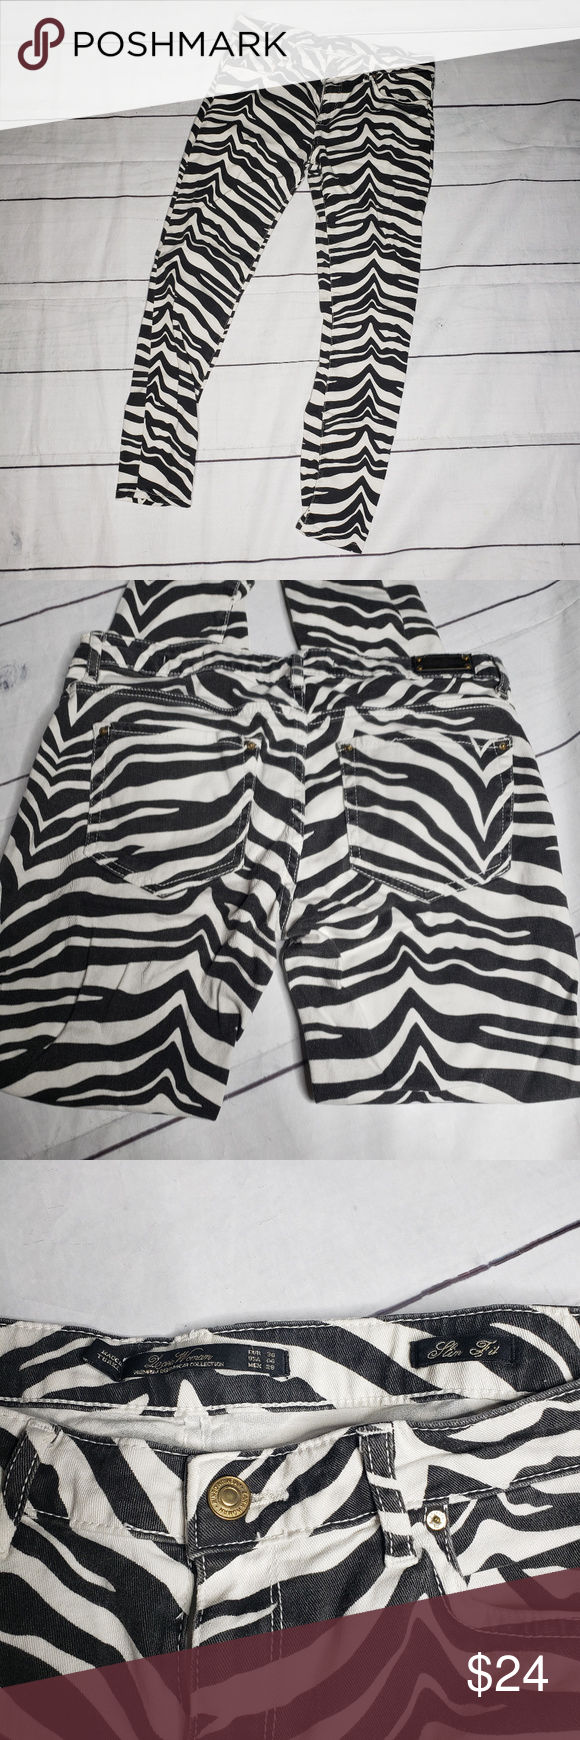 Zara Skinny  fit zebra print jeans 6 Zara Woman black and white zebra print jeans in size . Ankle length.  Please see pulled stitch on rear pocket.  98% cotton 2% elastane  Measurements are approximate and taken with a fabric tape measure.  Waist unaligned:15  Rise:9 Inseam:25.5 Leg Opening: 4.5 Zara Jeans Skinny #fabrictape